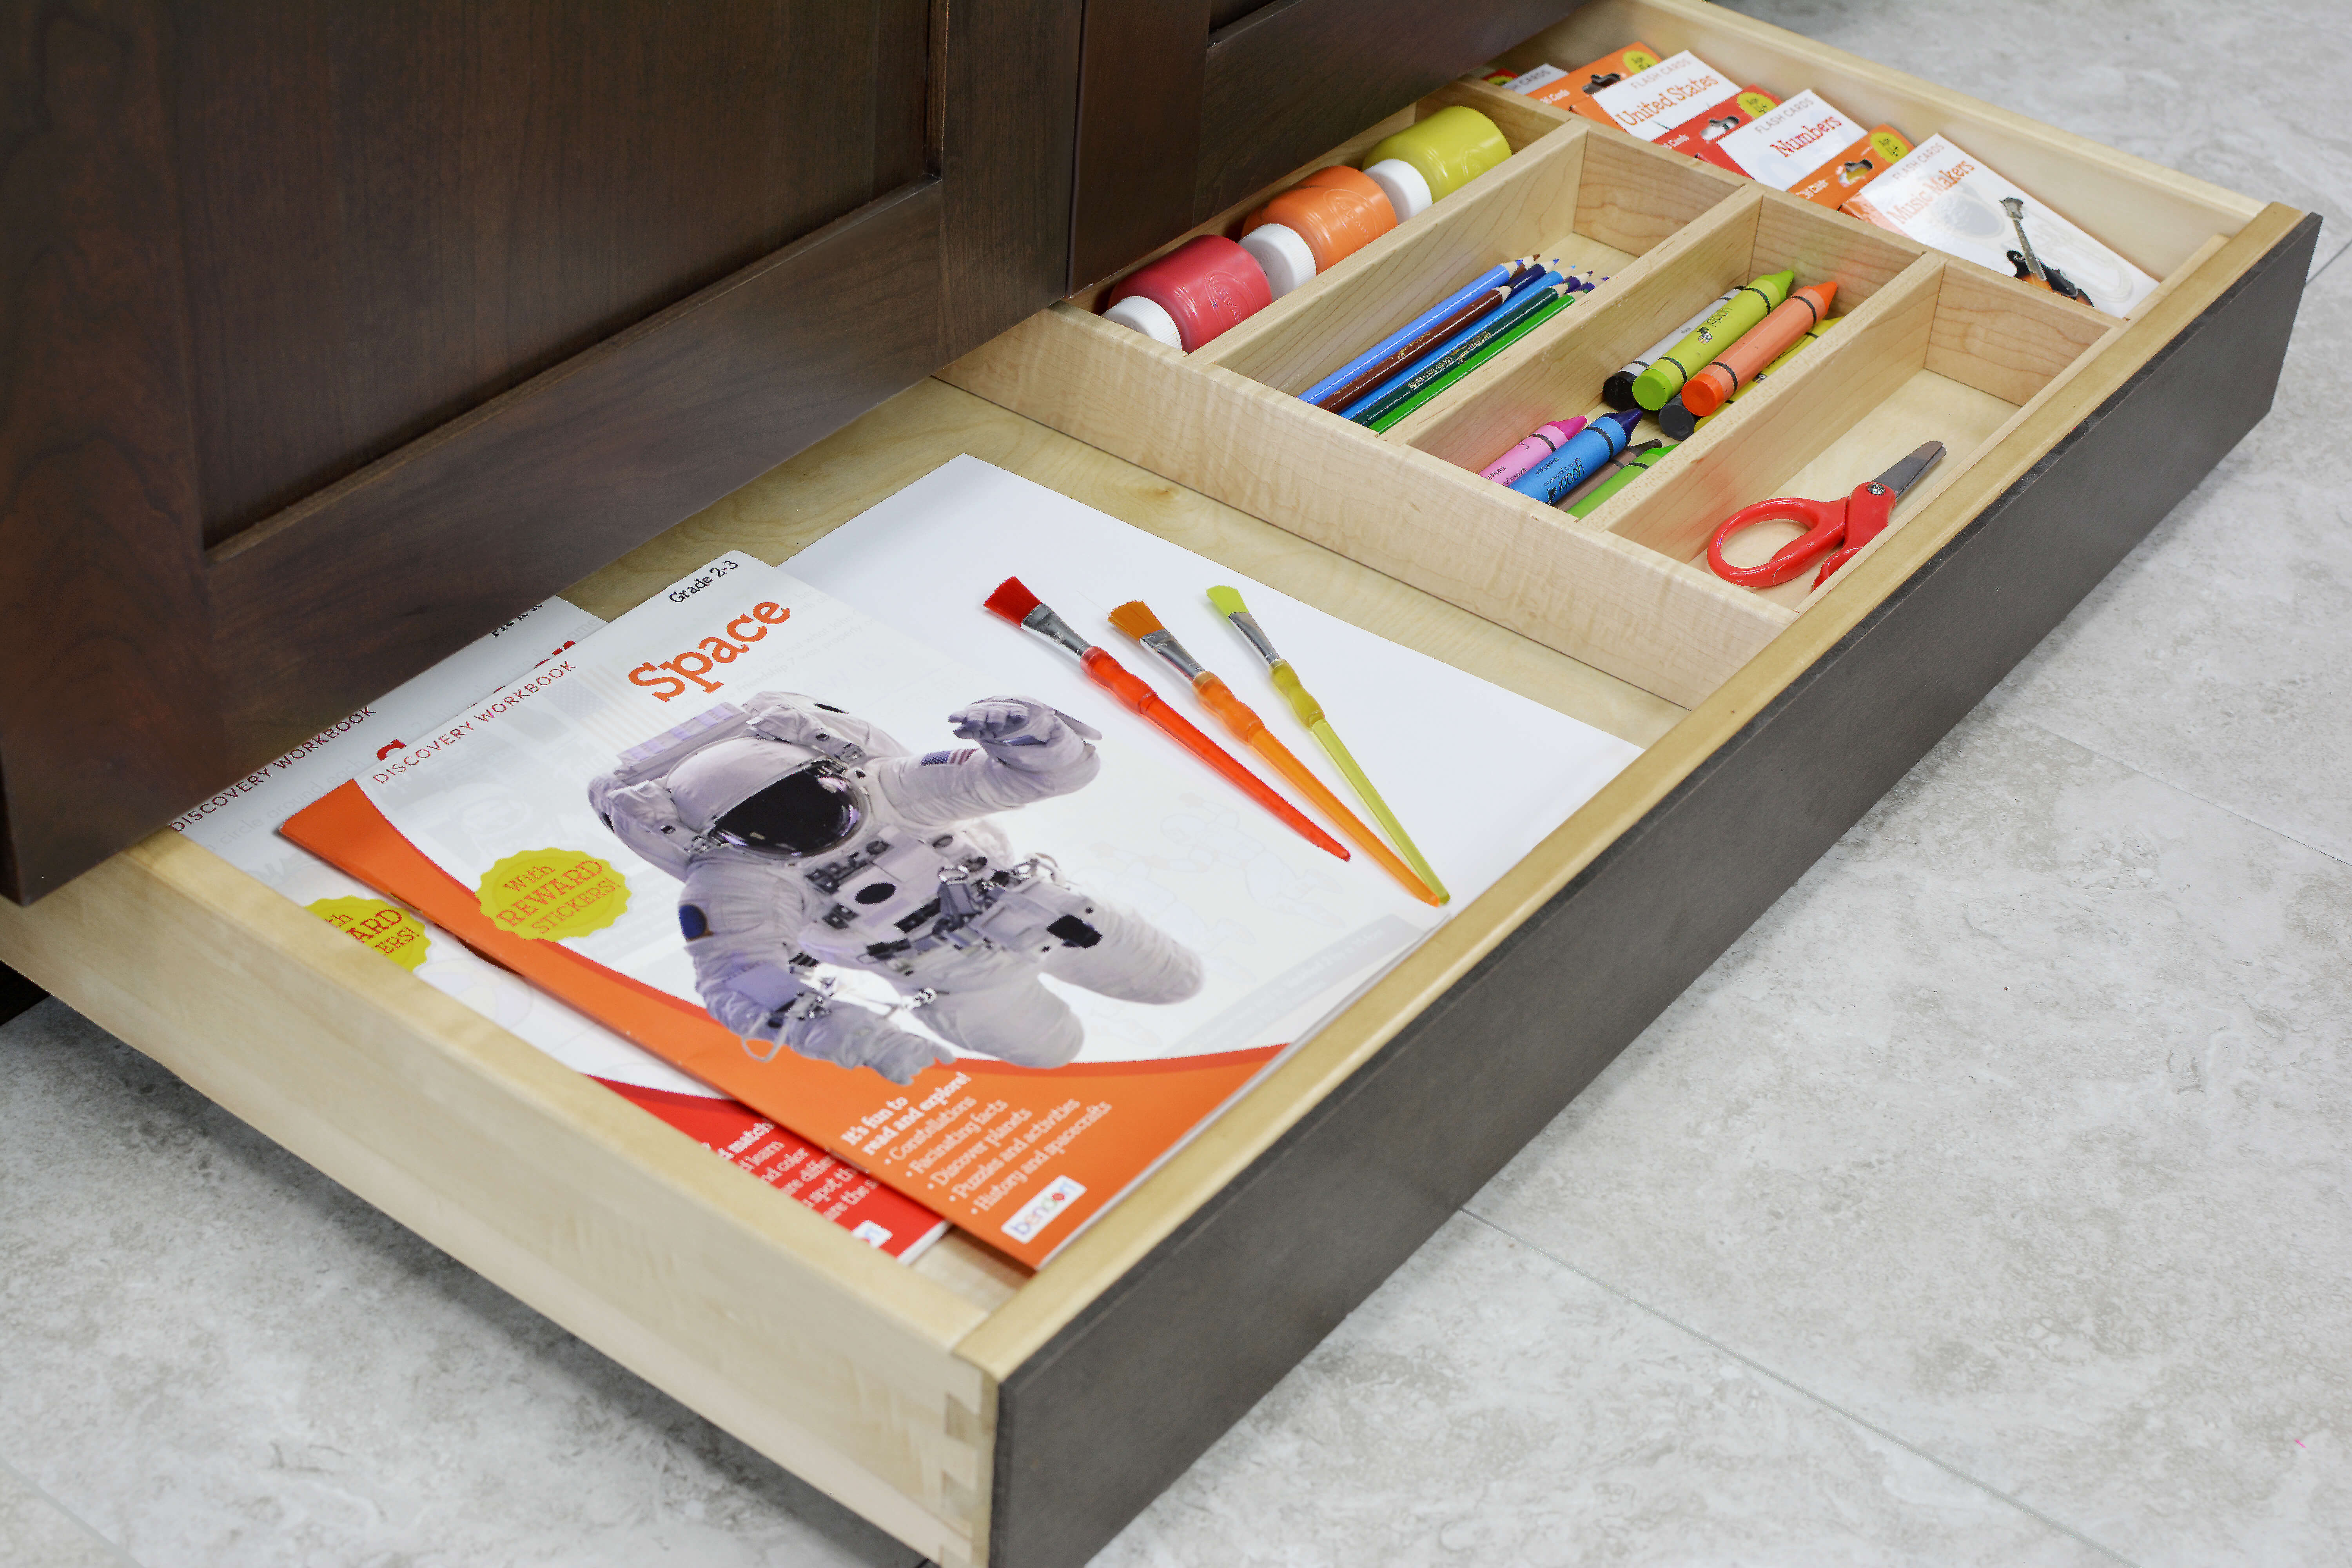 Miscellaneous items can find a home in a Dura Supreme Toe-Kick Drawer hidden at the foot of your cabinets. Add a Cutlery Divider for the extra organization to create a dedicated place for storing arts, crafts, and homework supplies. Place this solution near the dining room, a kitchen peninsula, or kitchen island where your household often sits to create a workstation that's easy to access and clean up.